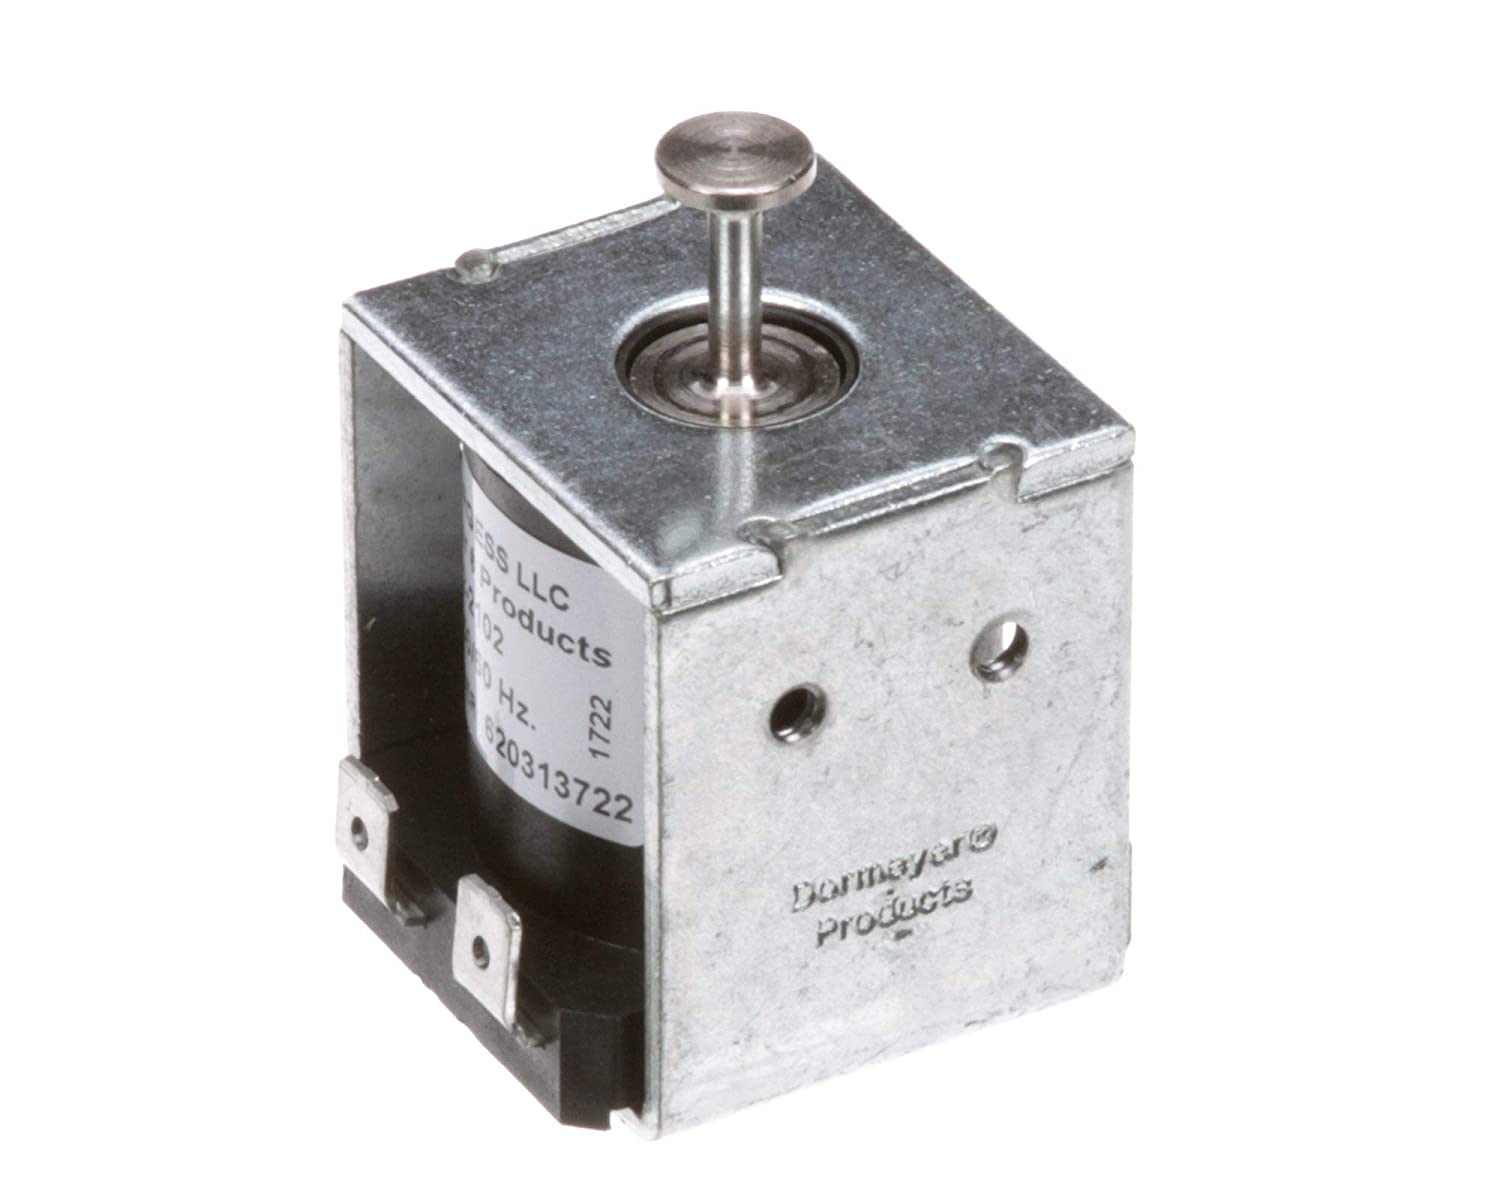 Cornelius 1059710 Solenoid Pull Limited time trial price 60 50 24Vac Discount is also underway